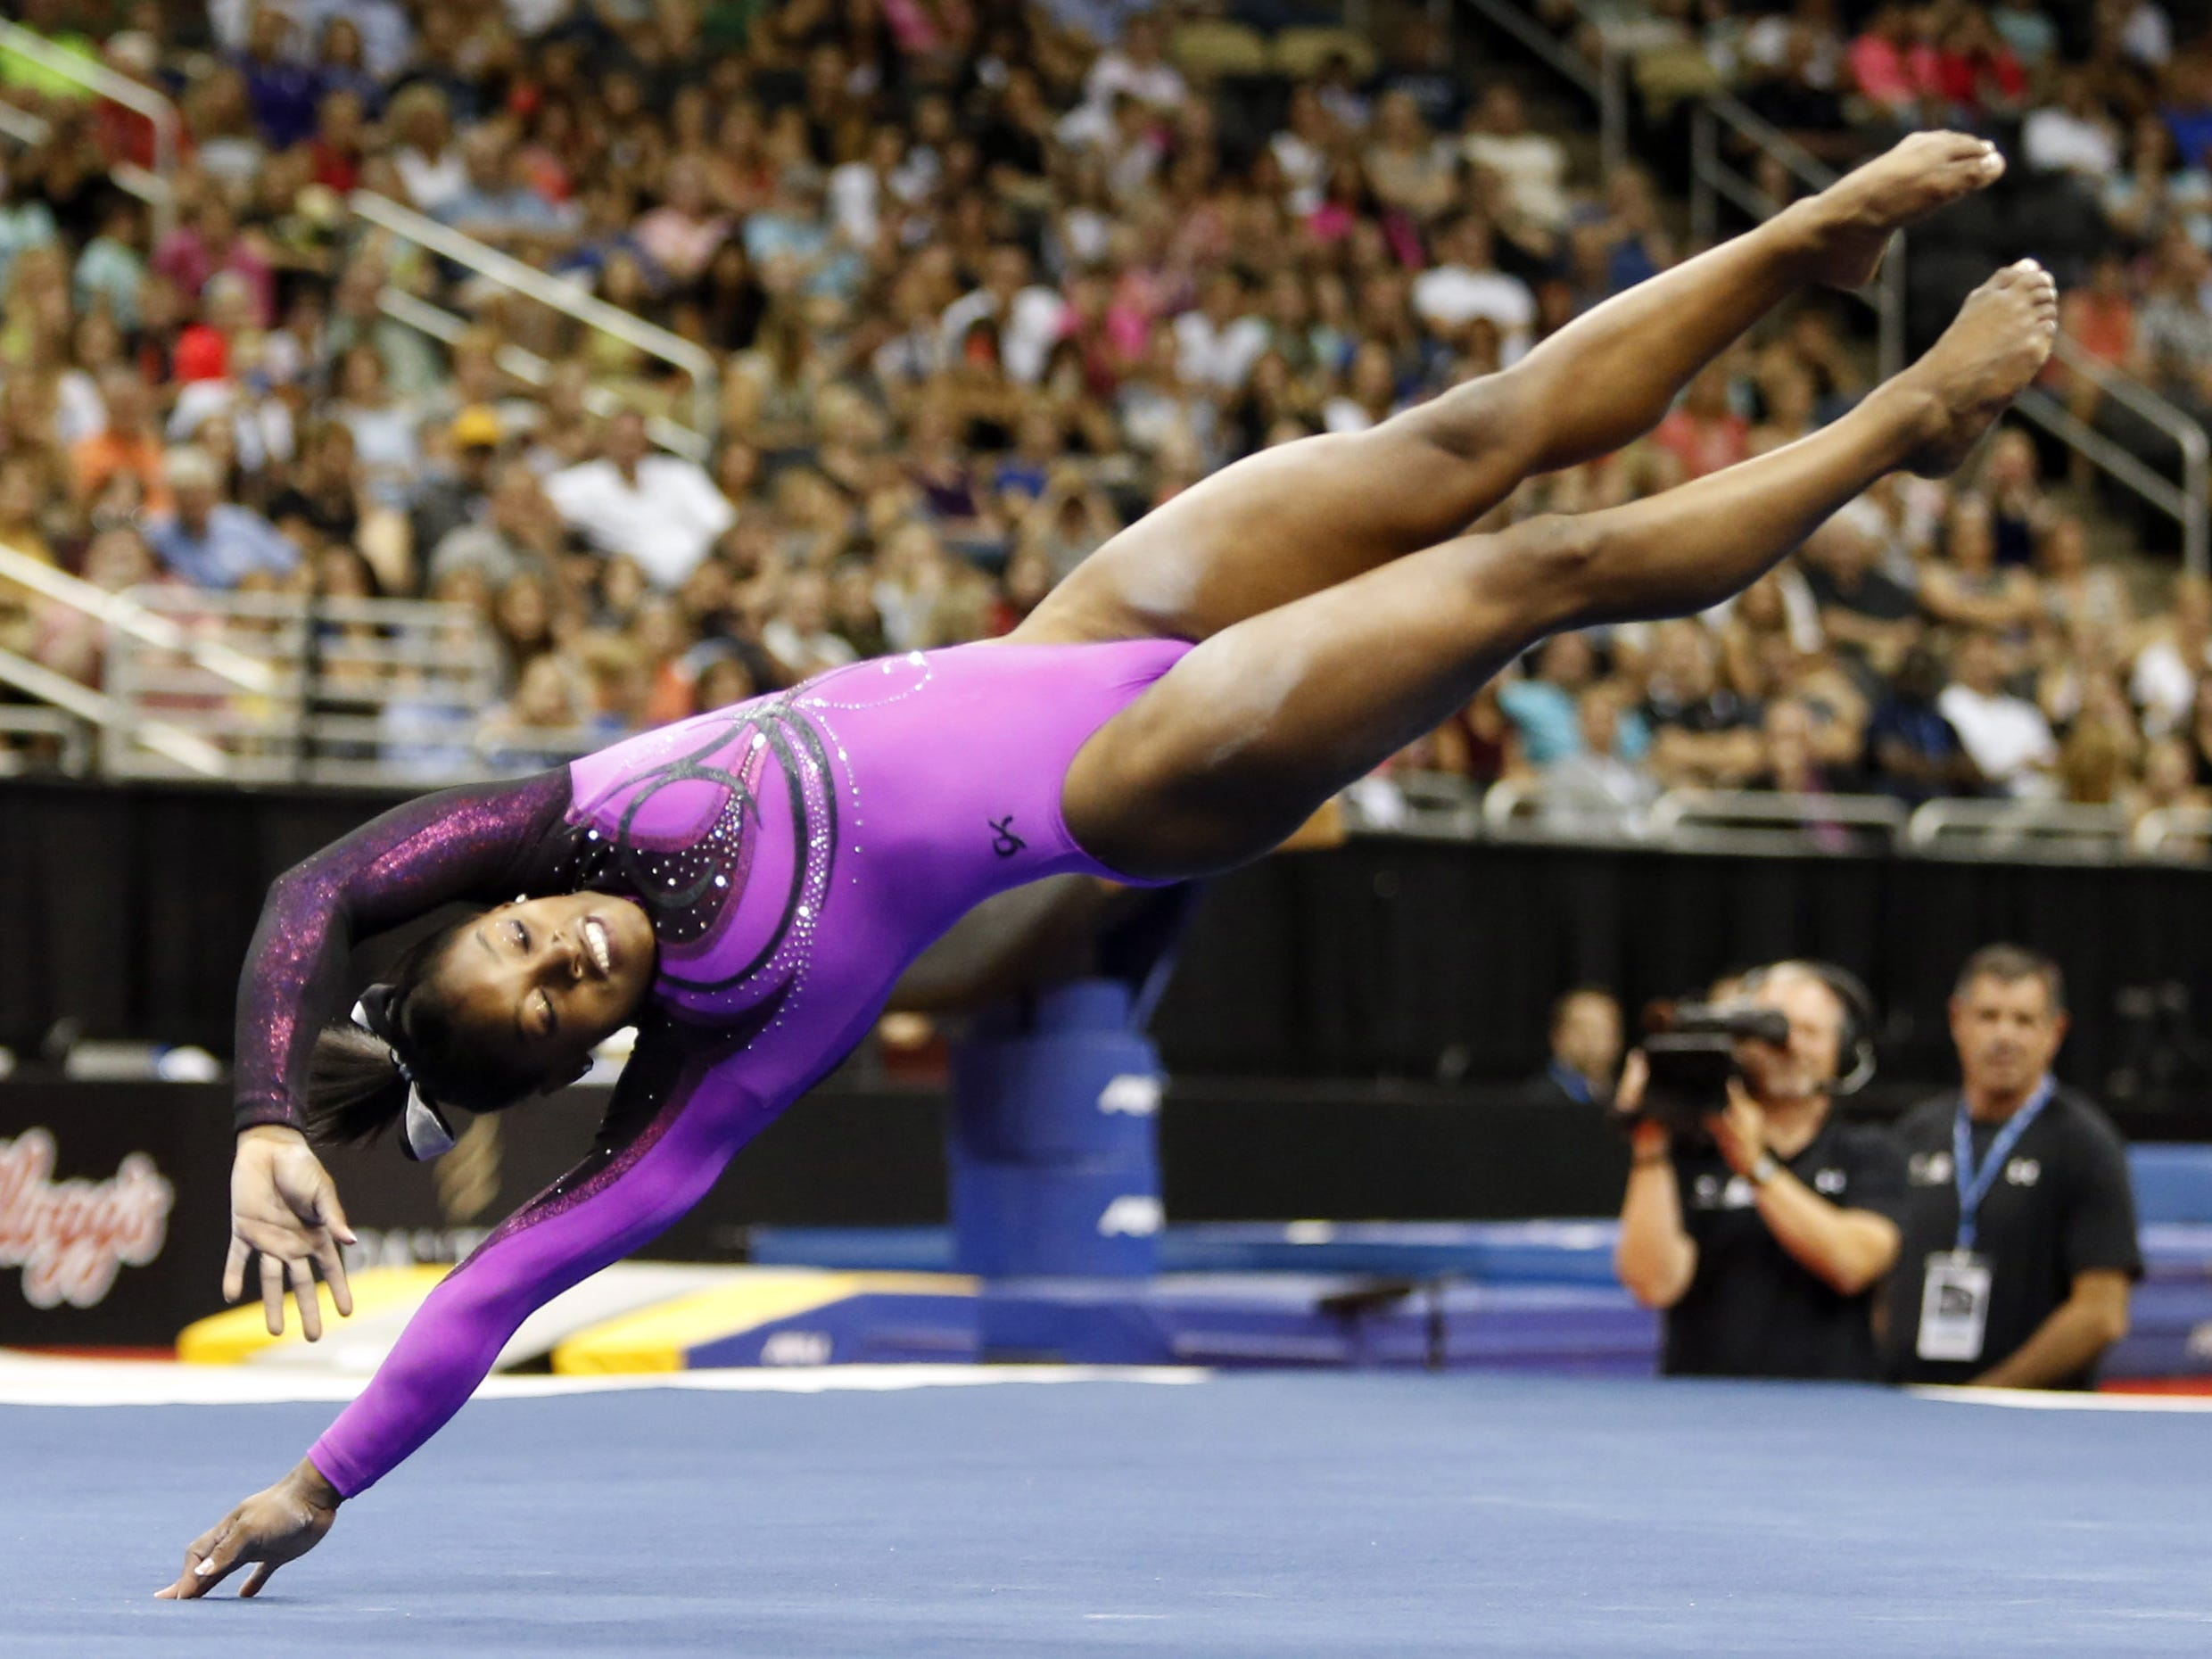 In 2014, Simone Biles competes on the floor exercise portion at the 2014 P&G Championships at the CONSOL Energy Center.